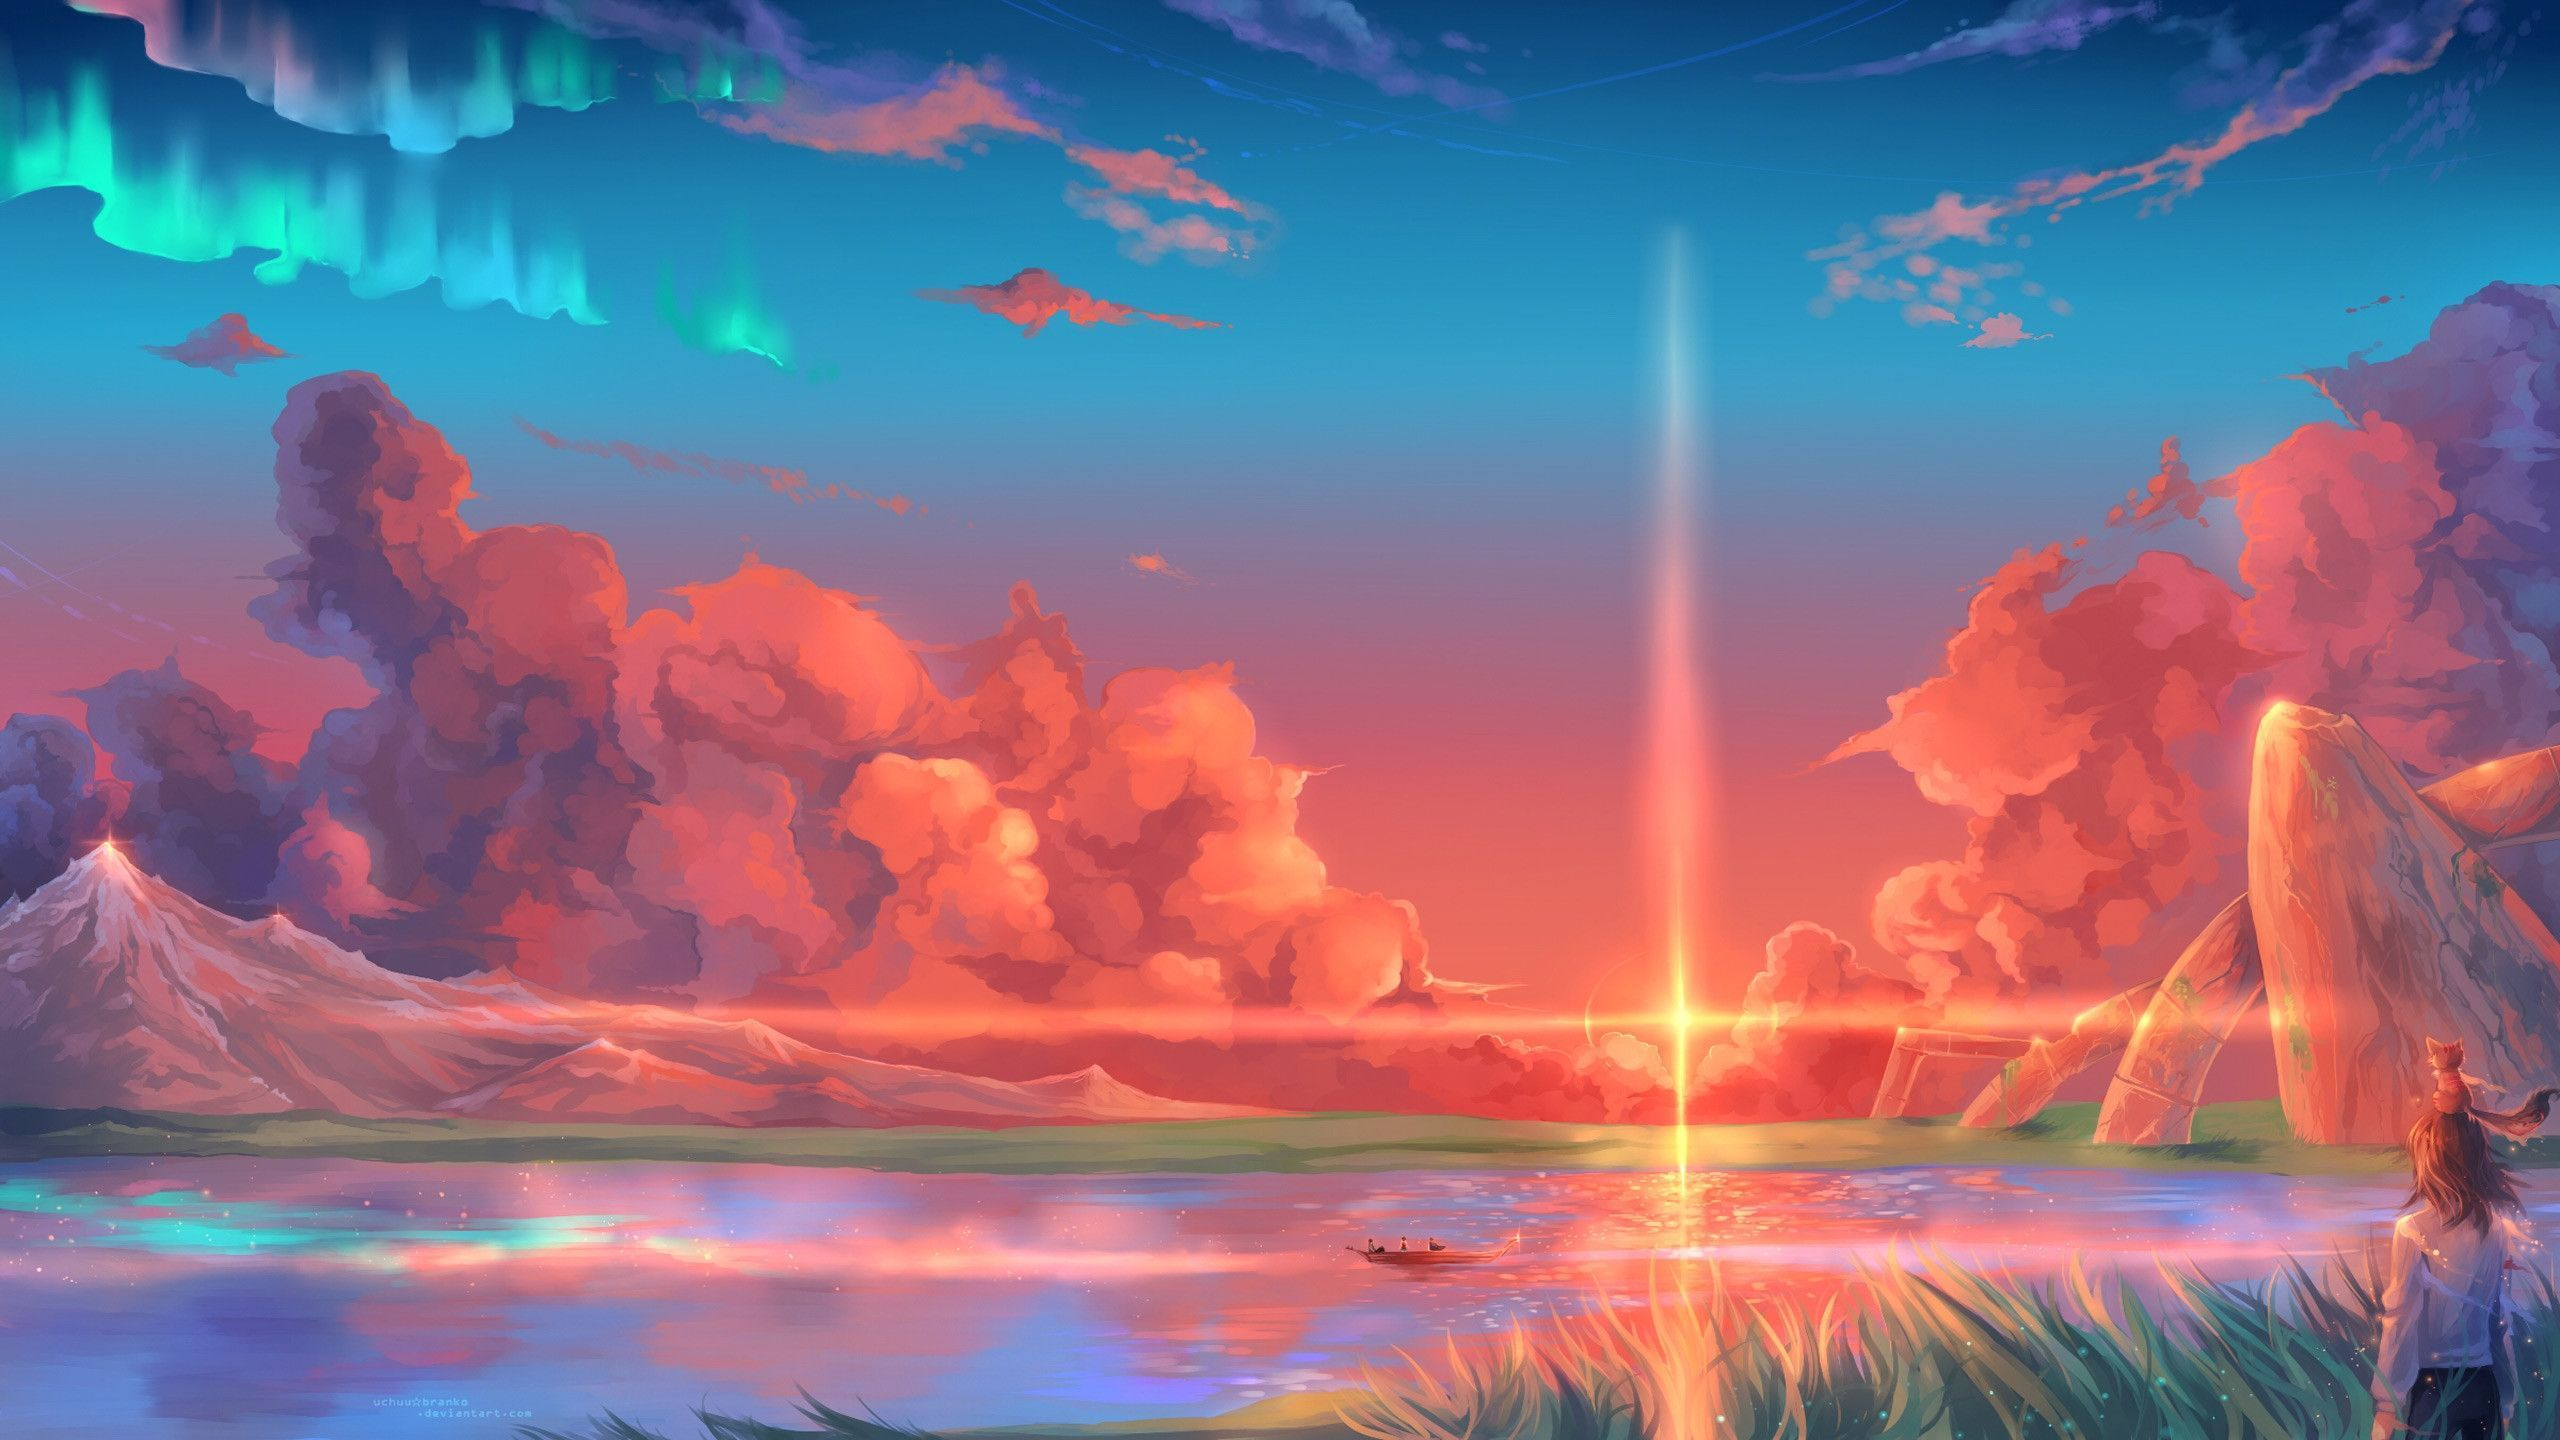 Beautiful Anime Scenery Wallpaper Music IndieArtist